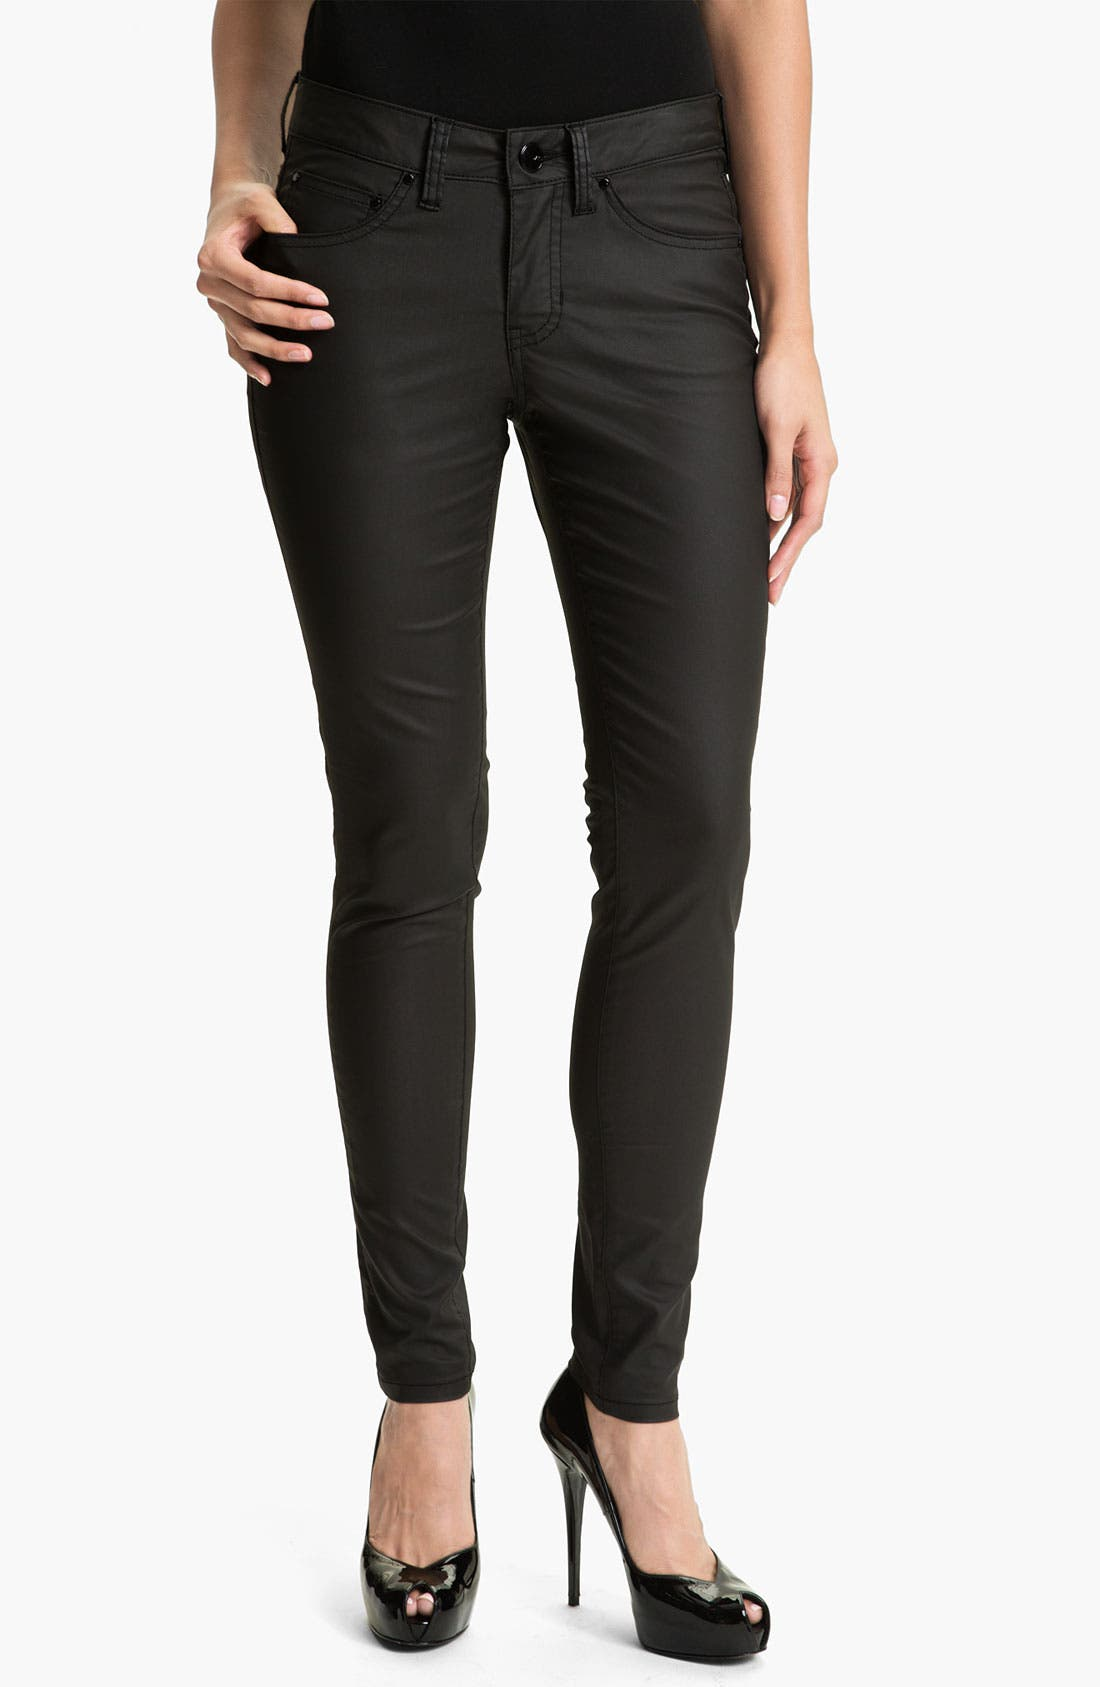 Main Image - Jag Jeans 'Chloe' Faux Leather Pants (Petite)